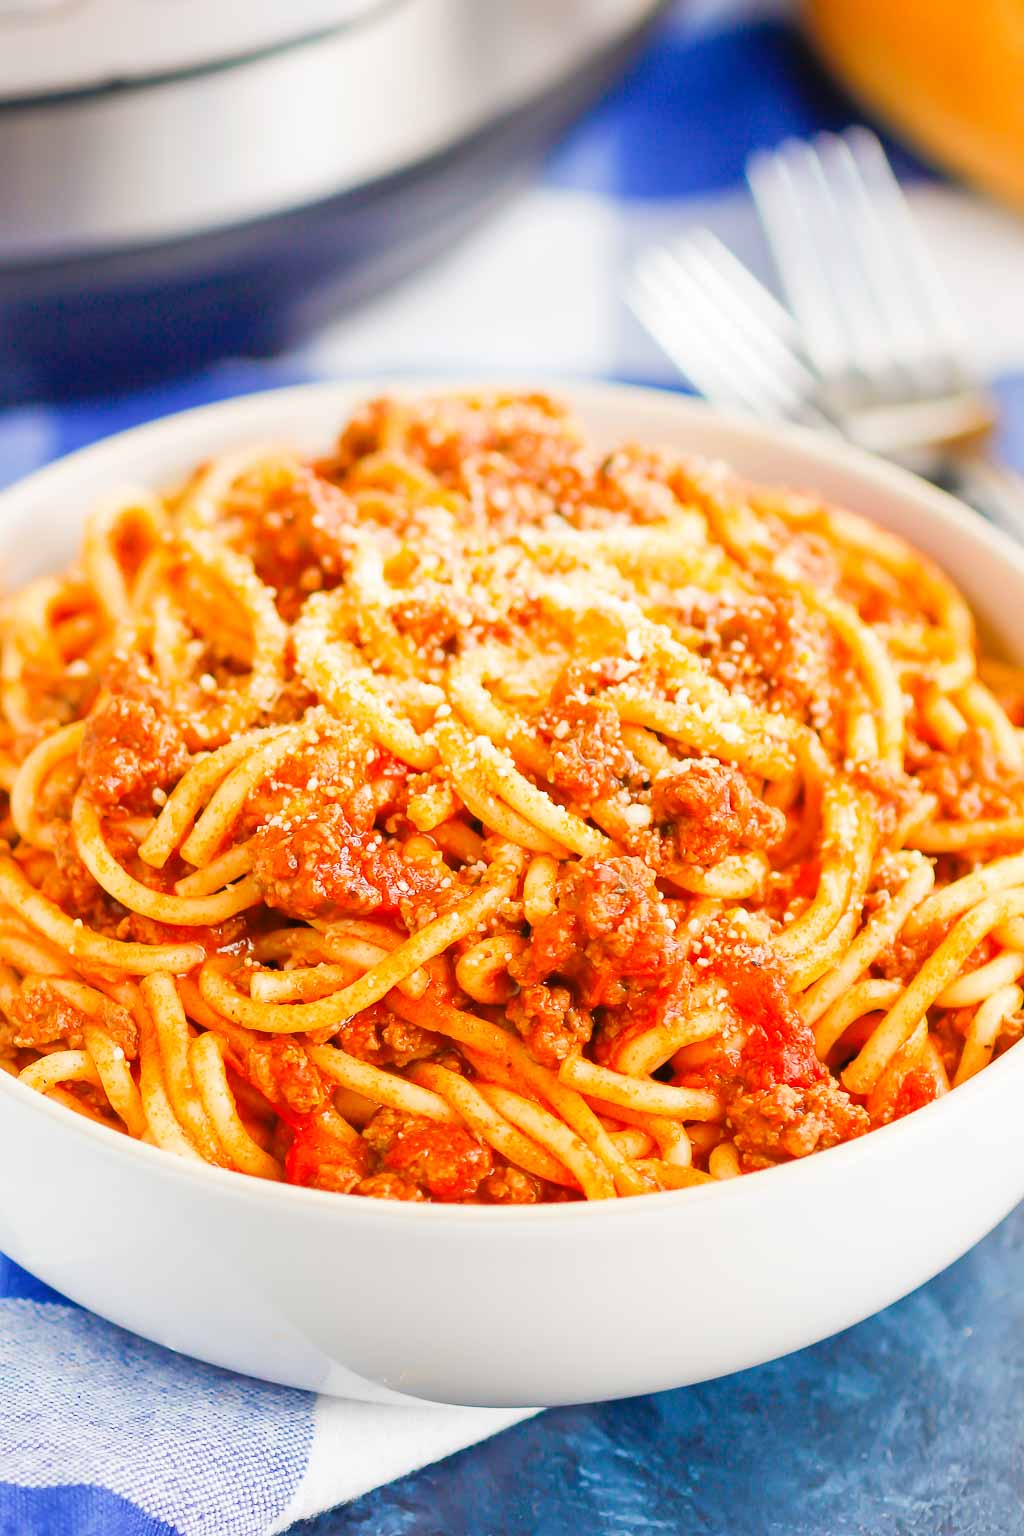 Instant Pot Spaghetti is an easy meal that's ready in just 30 minutes. Made in just one pot and with a few simple ingredients, this hearty dish is perfect to enjoy any time of the week! #instantpot  #instantpotrecipes  #instantpotspaghetti  #spaghetti  #weeknightdinner eatsauce #weeknightdinner  #kidfriendlymeals  #dinner #recipes #recipeoftheday